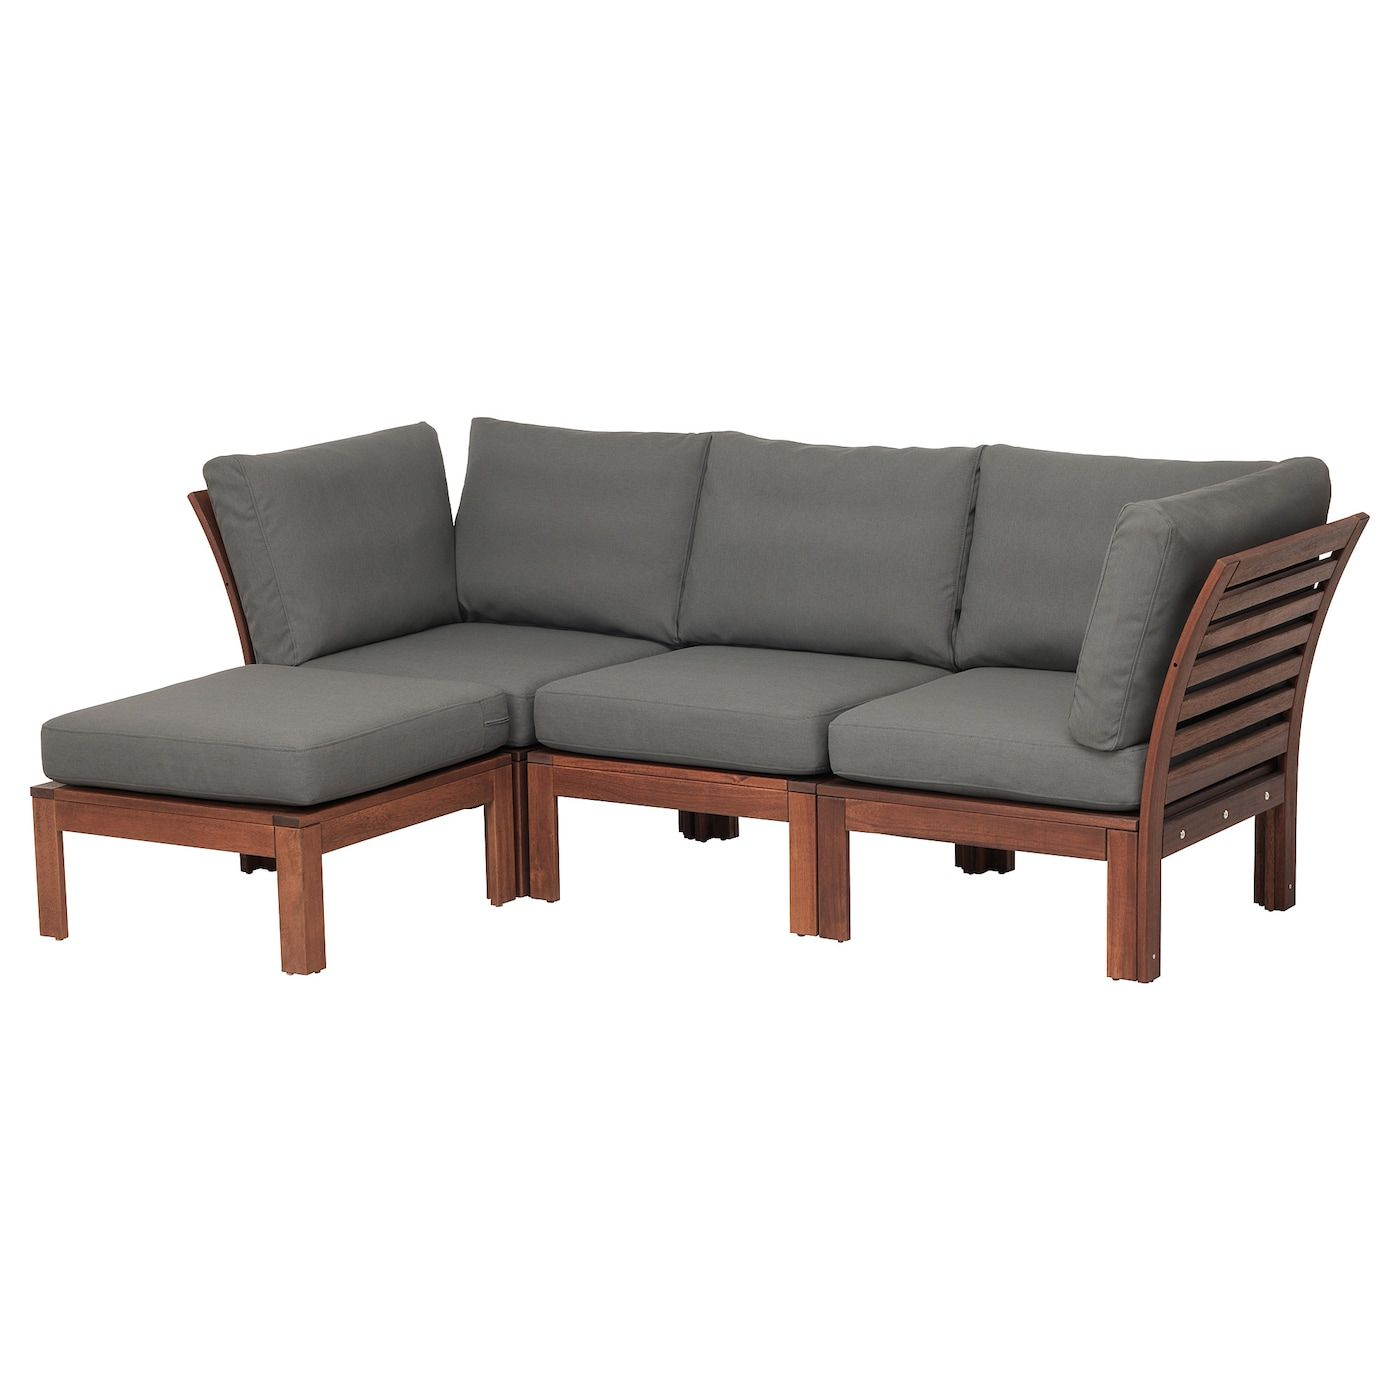 ÄPPLARÖ 3 seat modular sofa, outdoor brown stained with